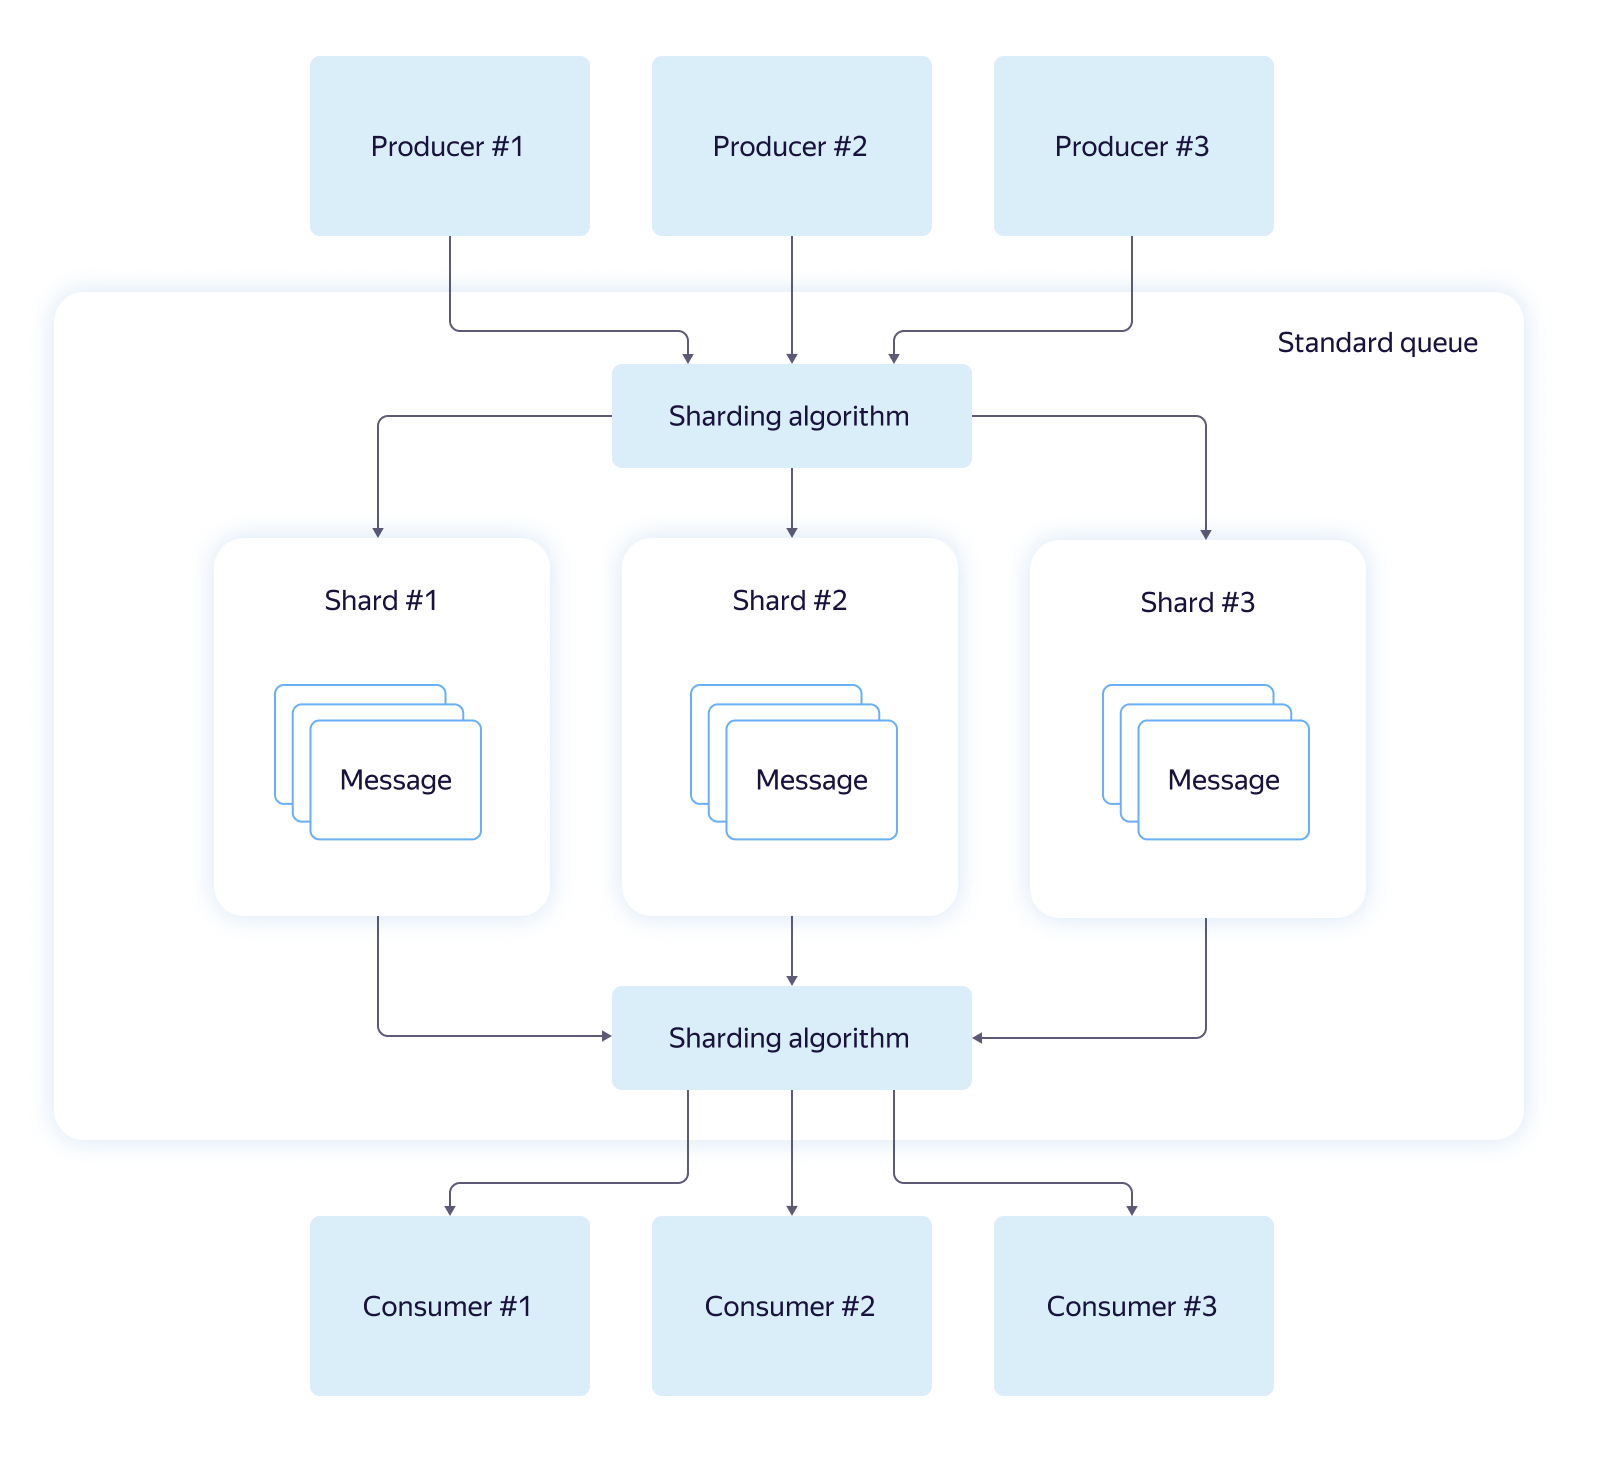 The architecture of the service of distributed message